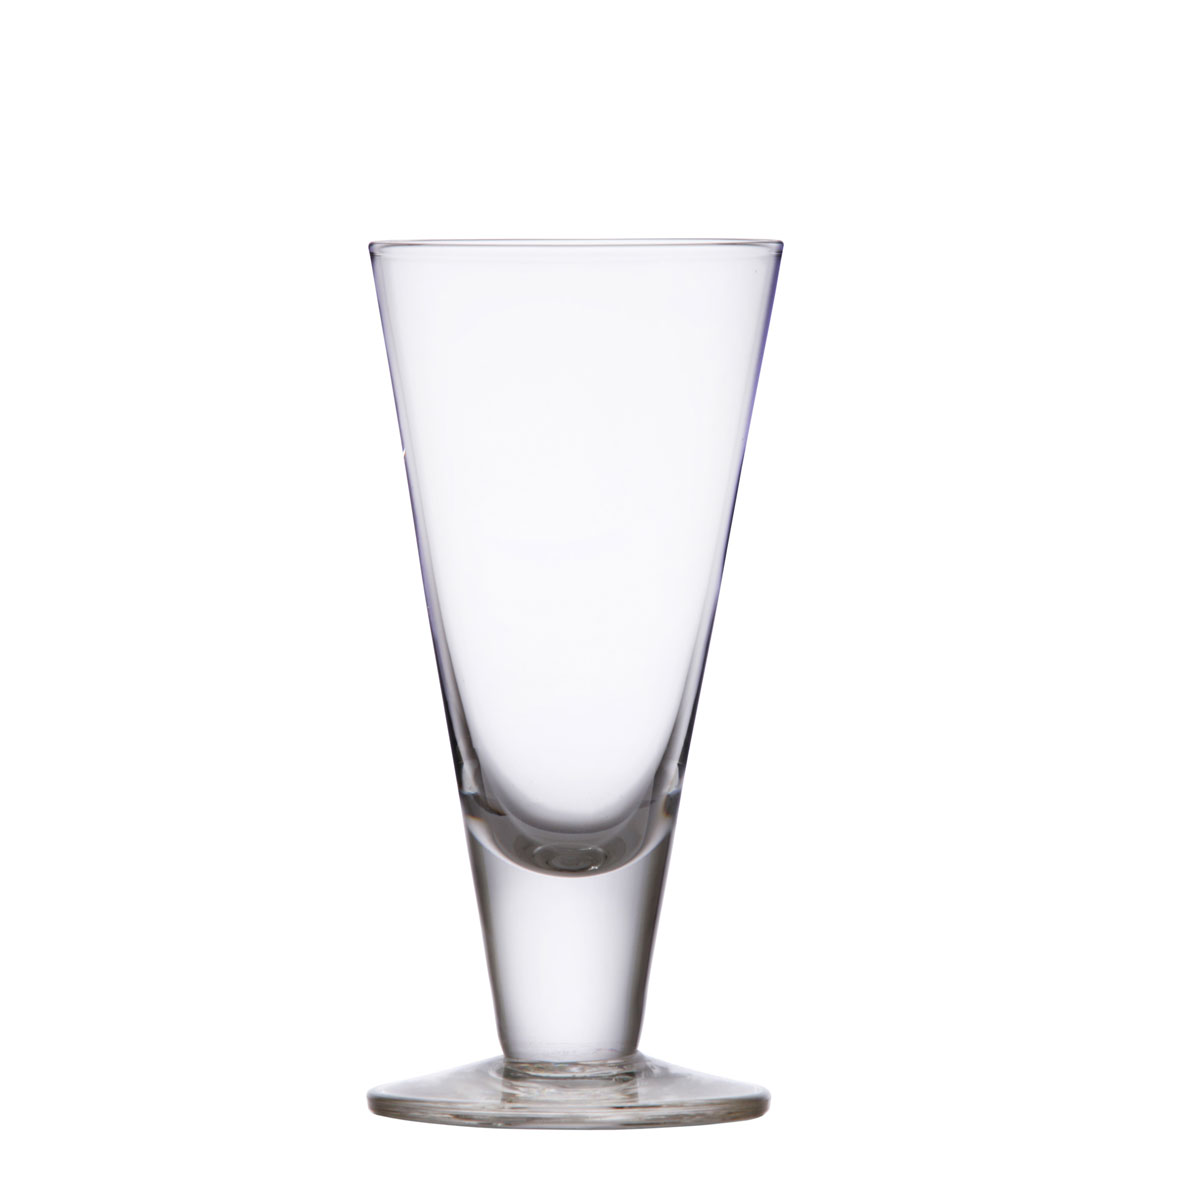 Schott Zwiesel Tasterz Mini Pilsner Beer Glass, Single